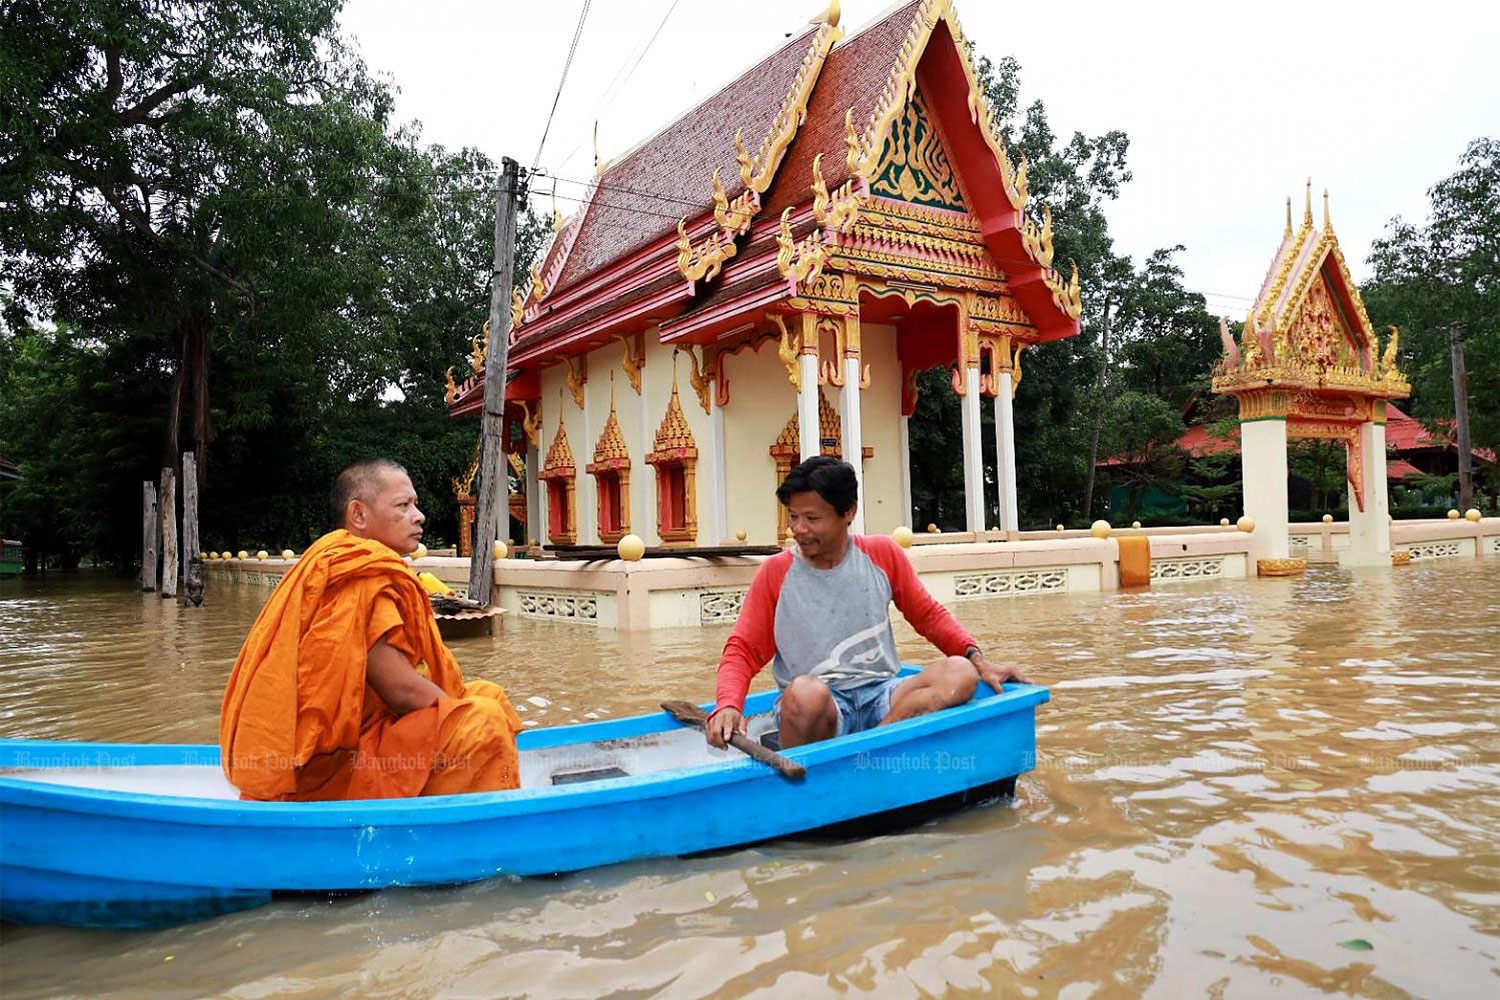 A monk and his helper sit in a boat as they pass through a heavily flooded community in Ban Kok Thai in Nakhon Ratchasima's Pak Thong Chai district on Tuesday. The district is one of worst-hit areas in a province battered by storms in the last couple of weeks. (Photo by Prasit Tangprasert)